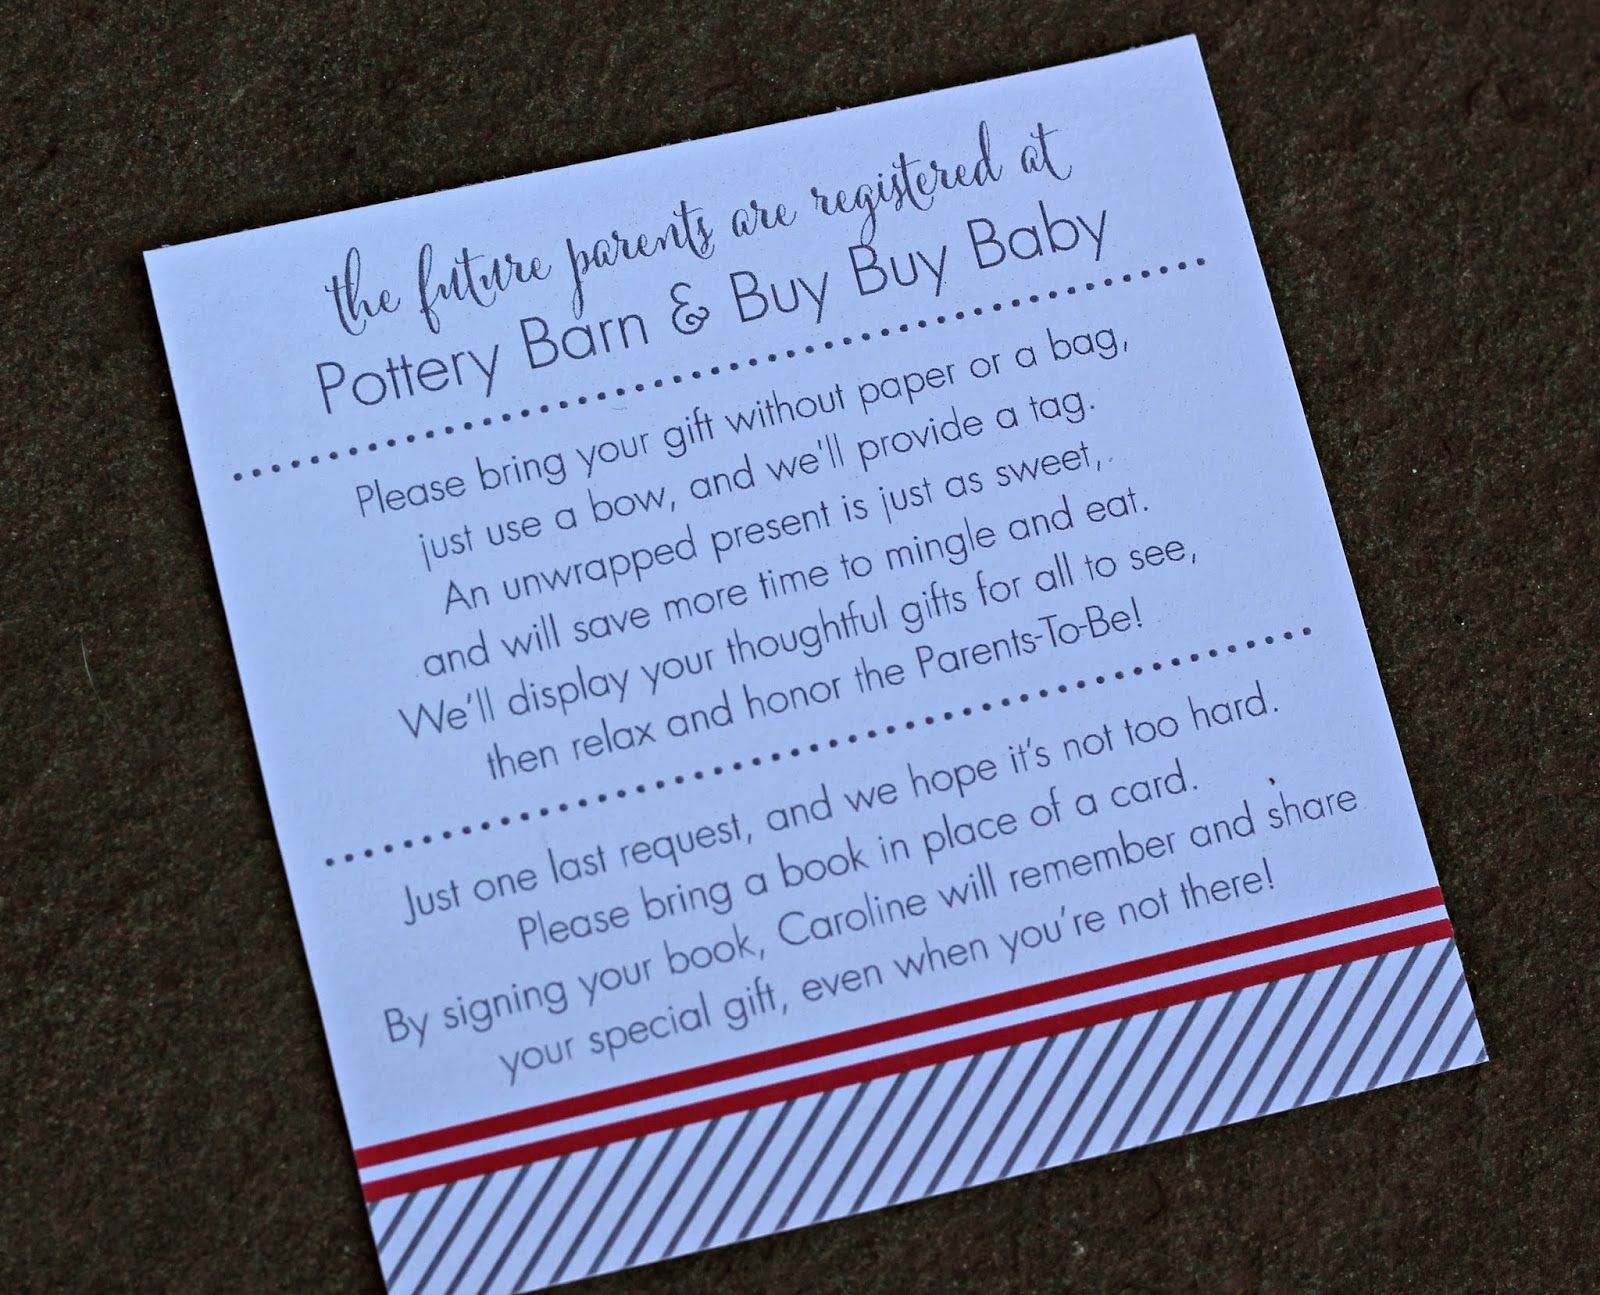 Display Bridal Shower Invitation Wording Luxury Saves the Three Hours Of Oohing and Aahing Over Diaper